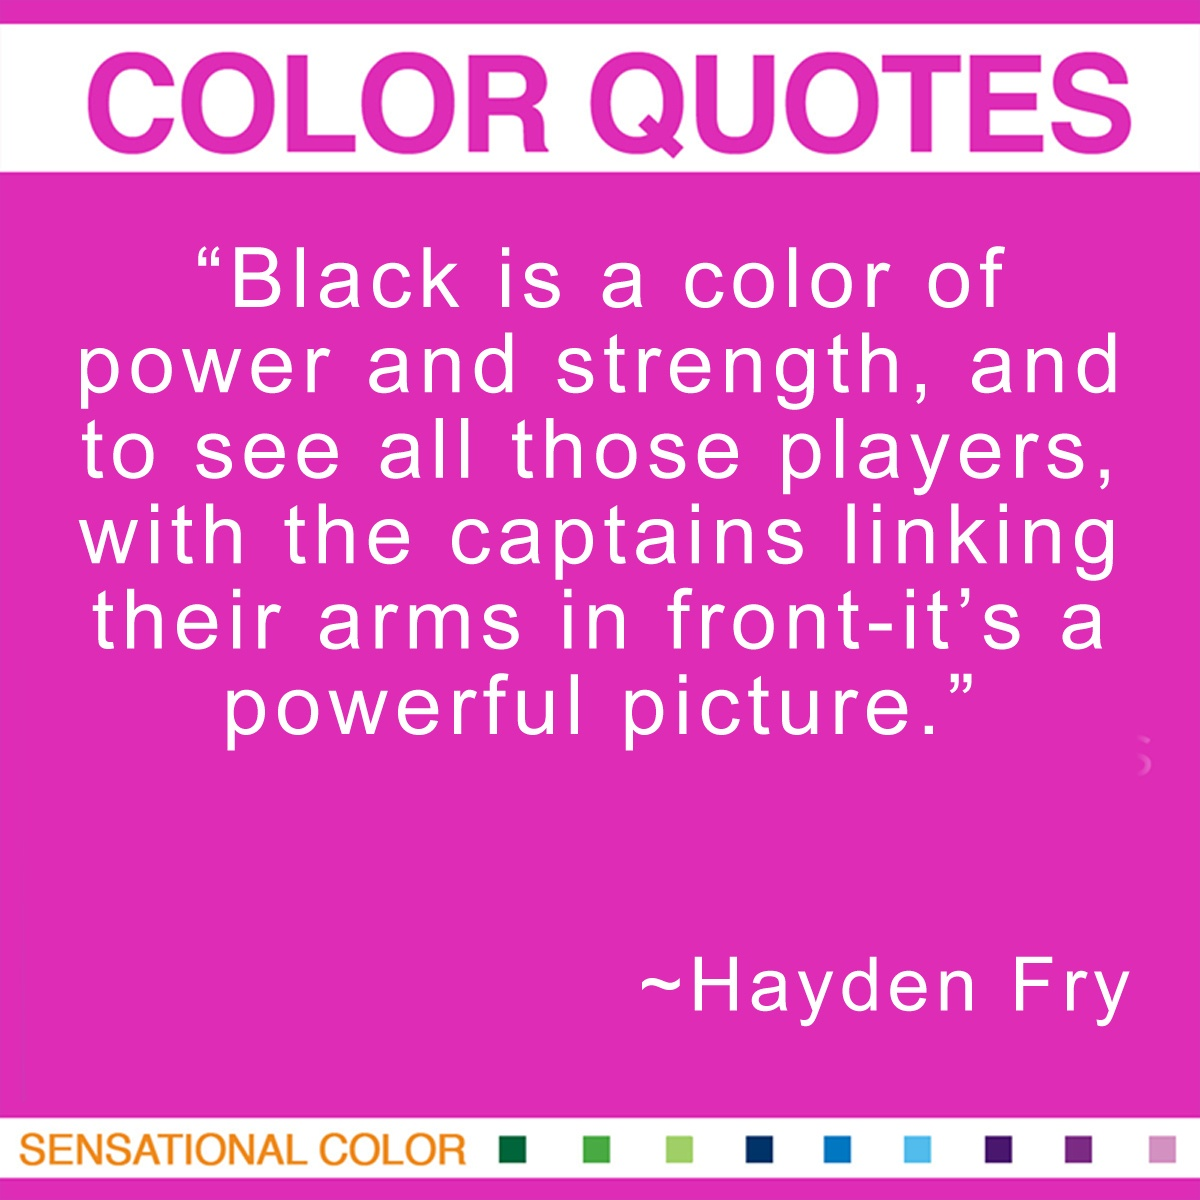 """Black is a color of power and strength, and to see all those players, with the captains linking their arms in front-it's a powerful picture."" - Hayden Fry"